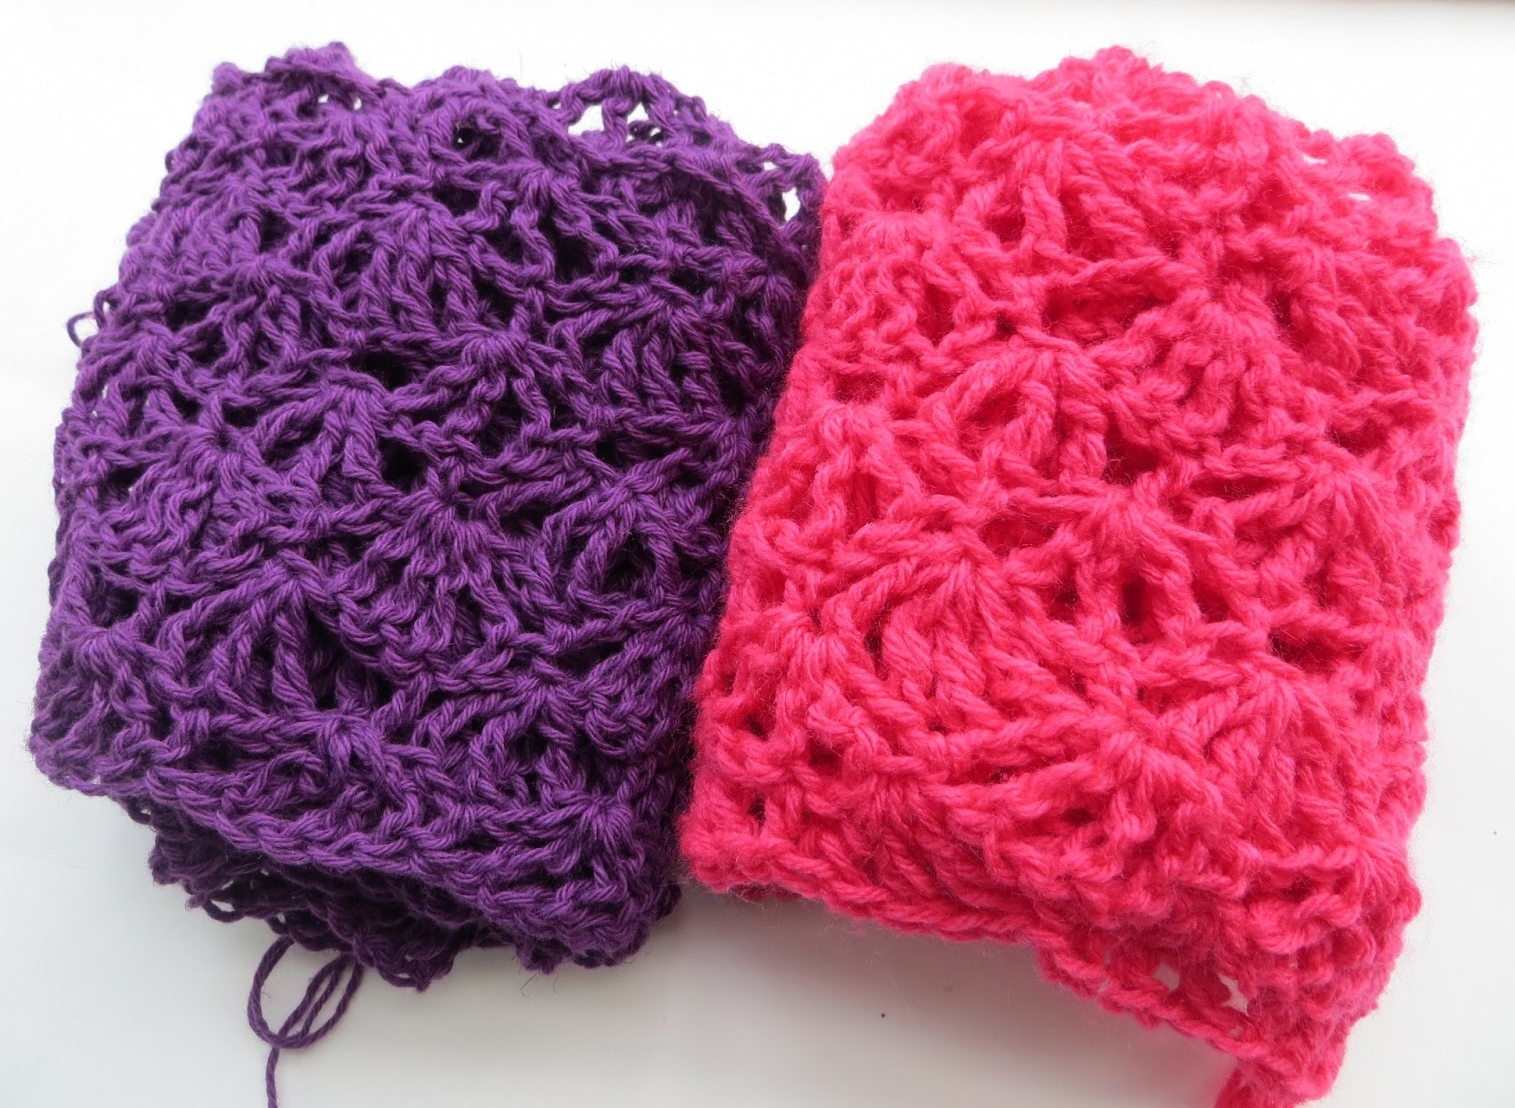 Crochet Patterns Download : Image Crochet Pattern Download